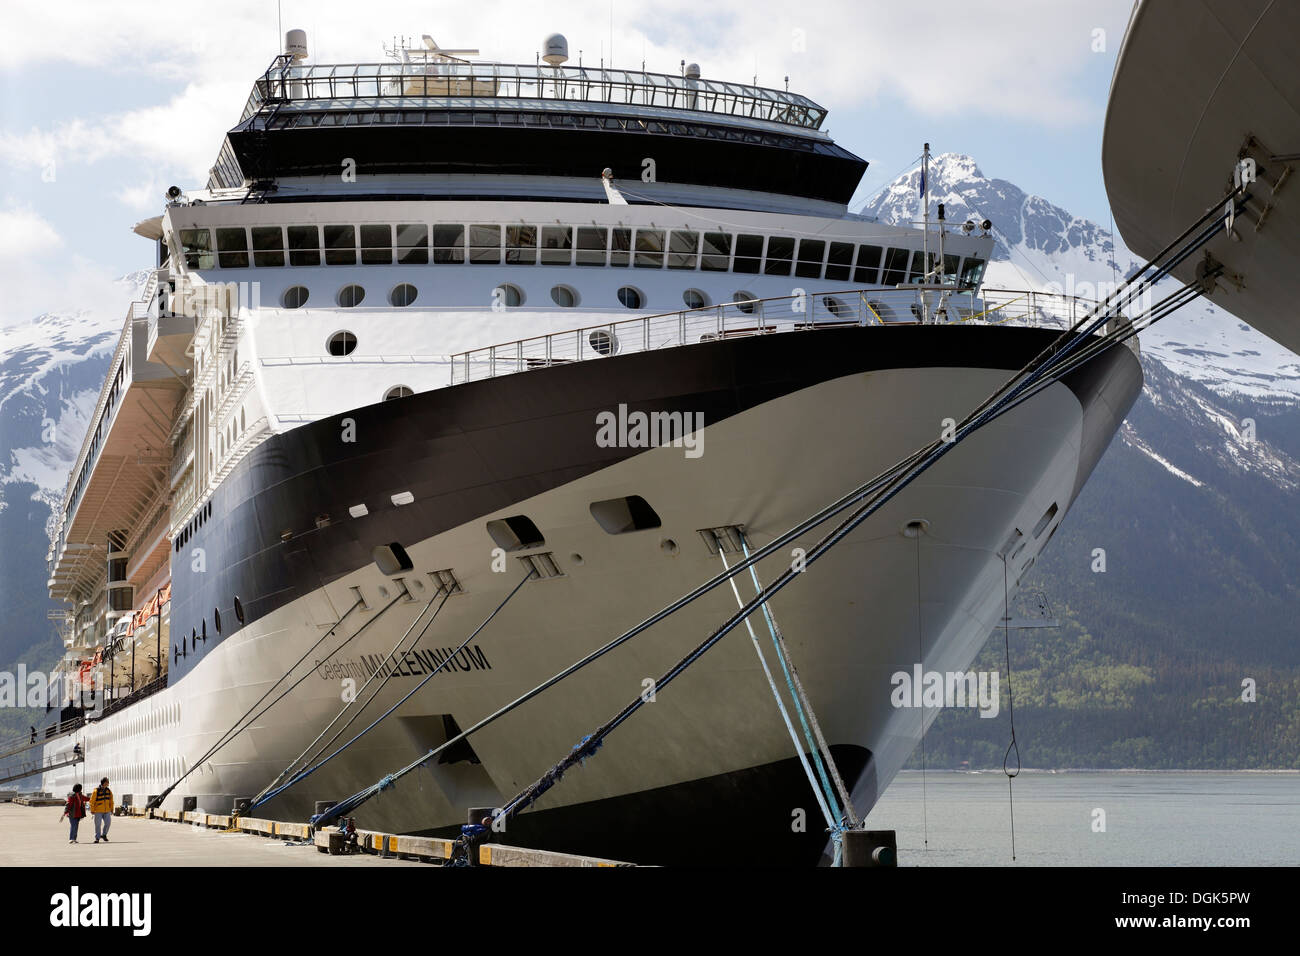 Cruise liners moored at Skagway in Alaska. - Stock Image